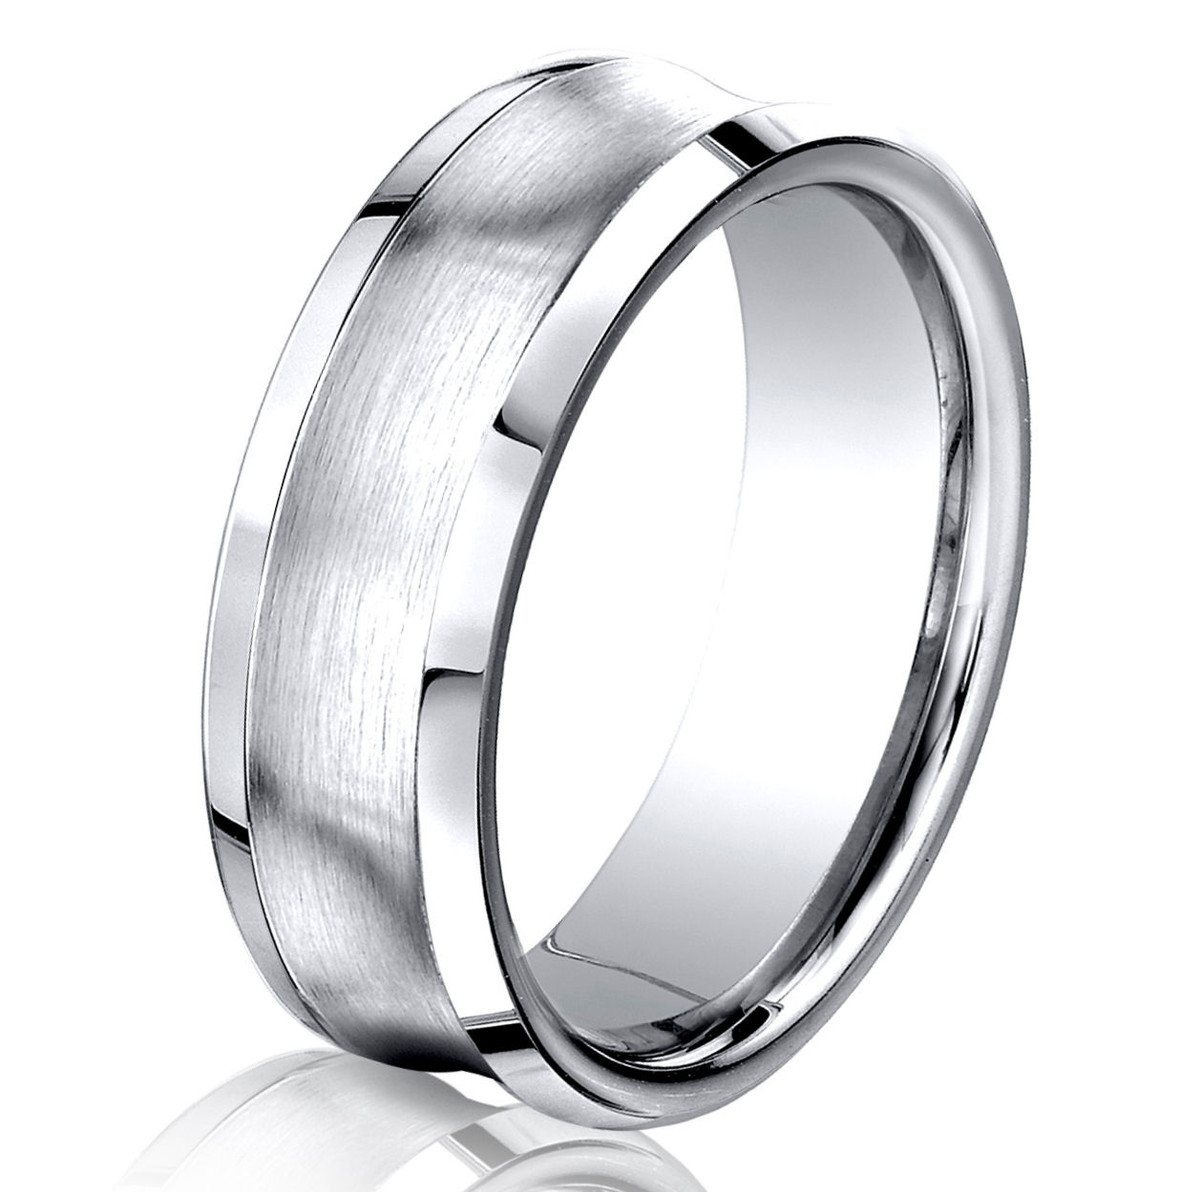 comfort cobalt chrome wedding fit ridge ring dome rings semi bridal product brushed finish edge anniversary band